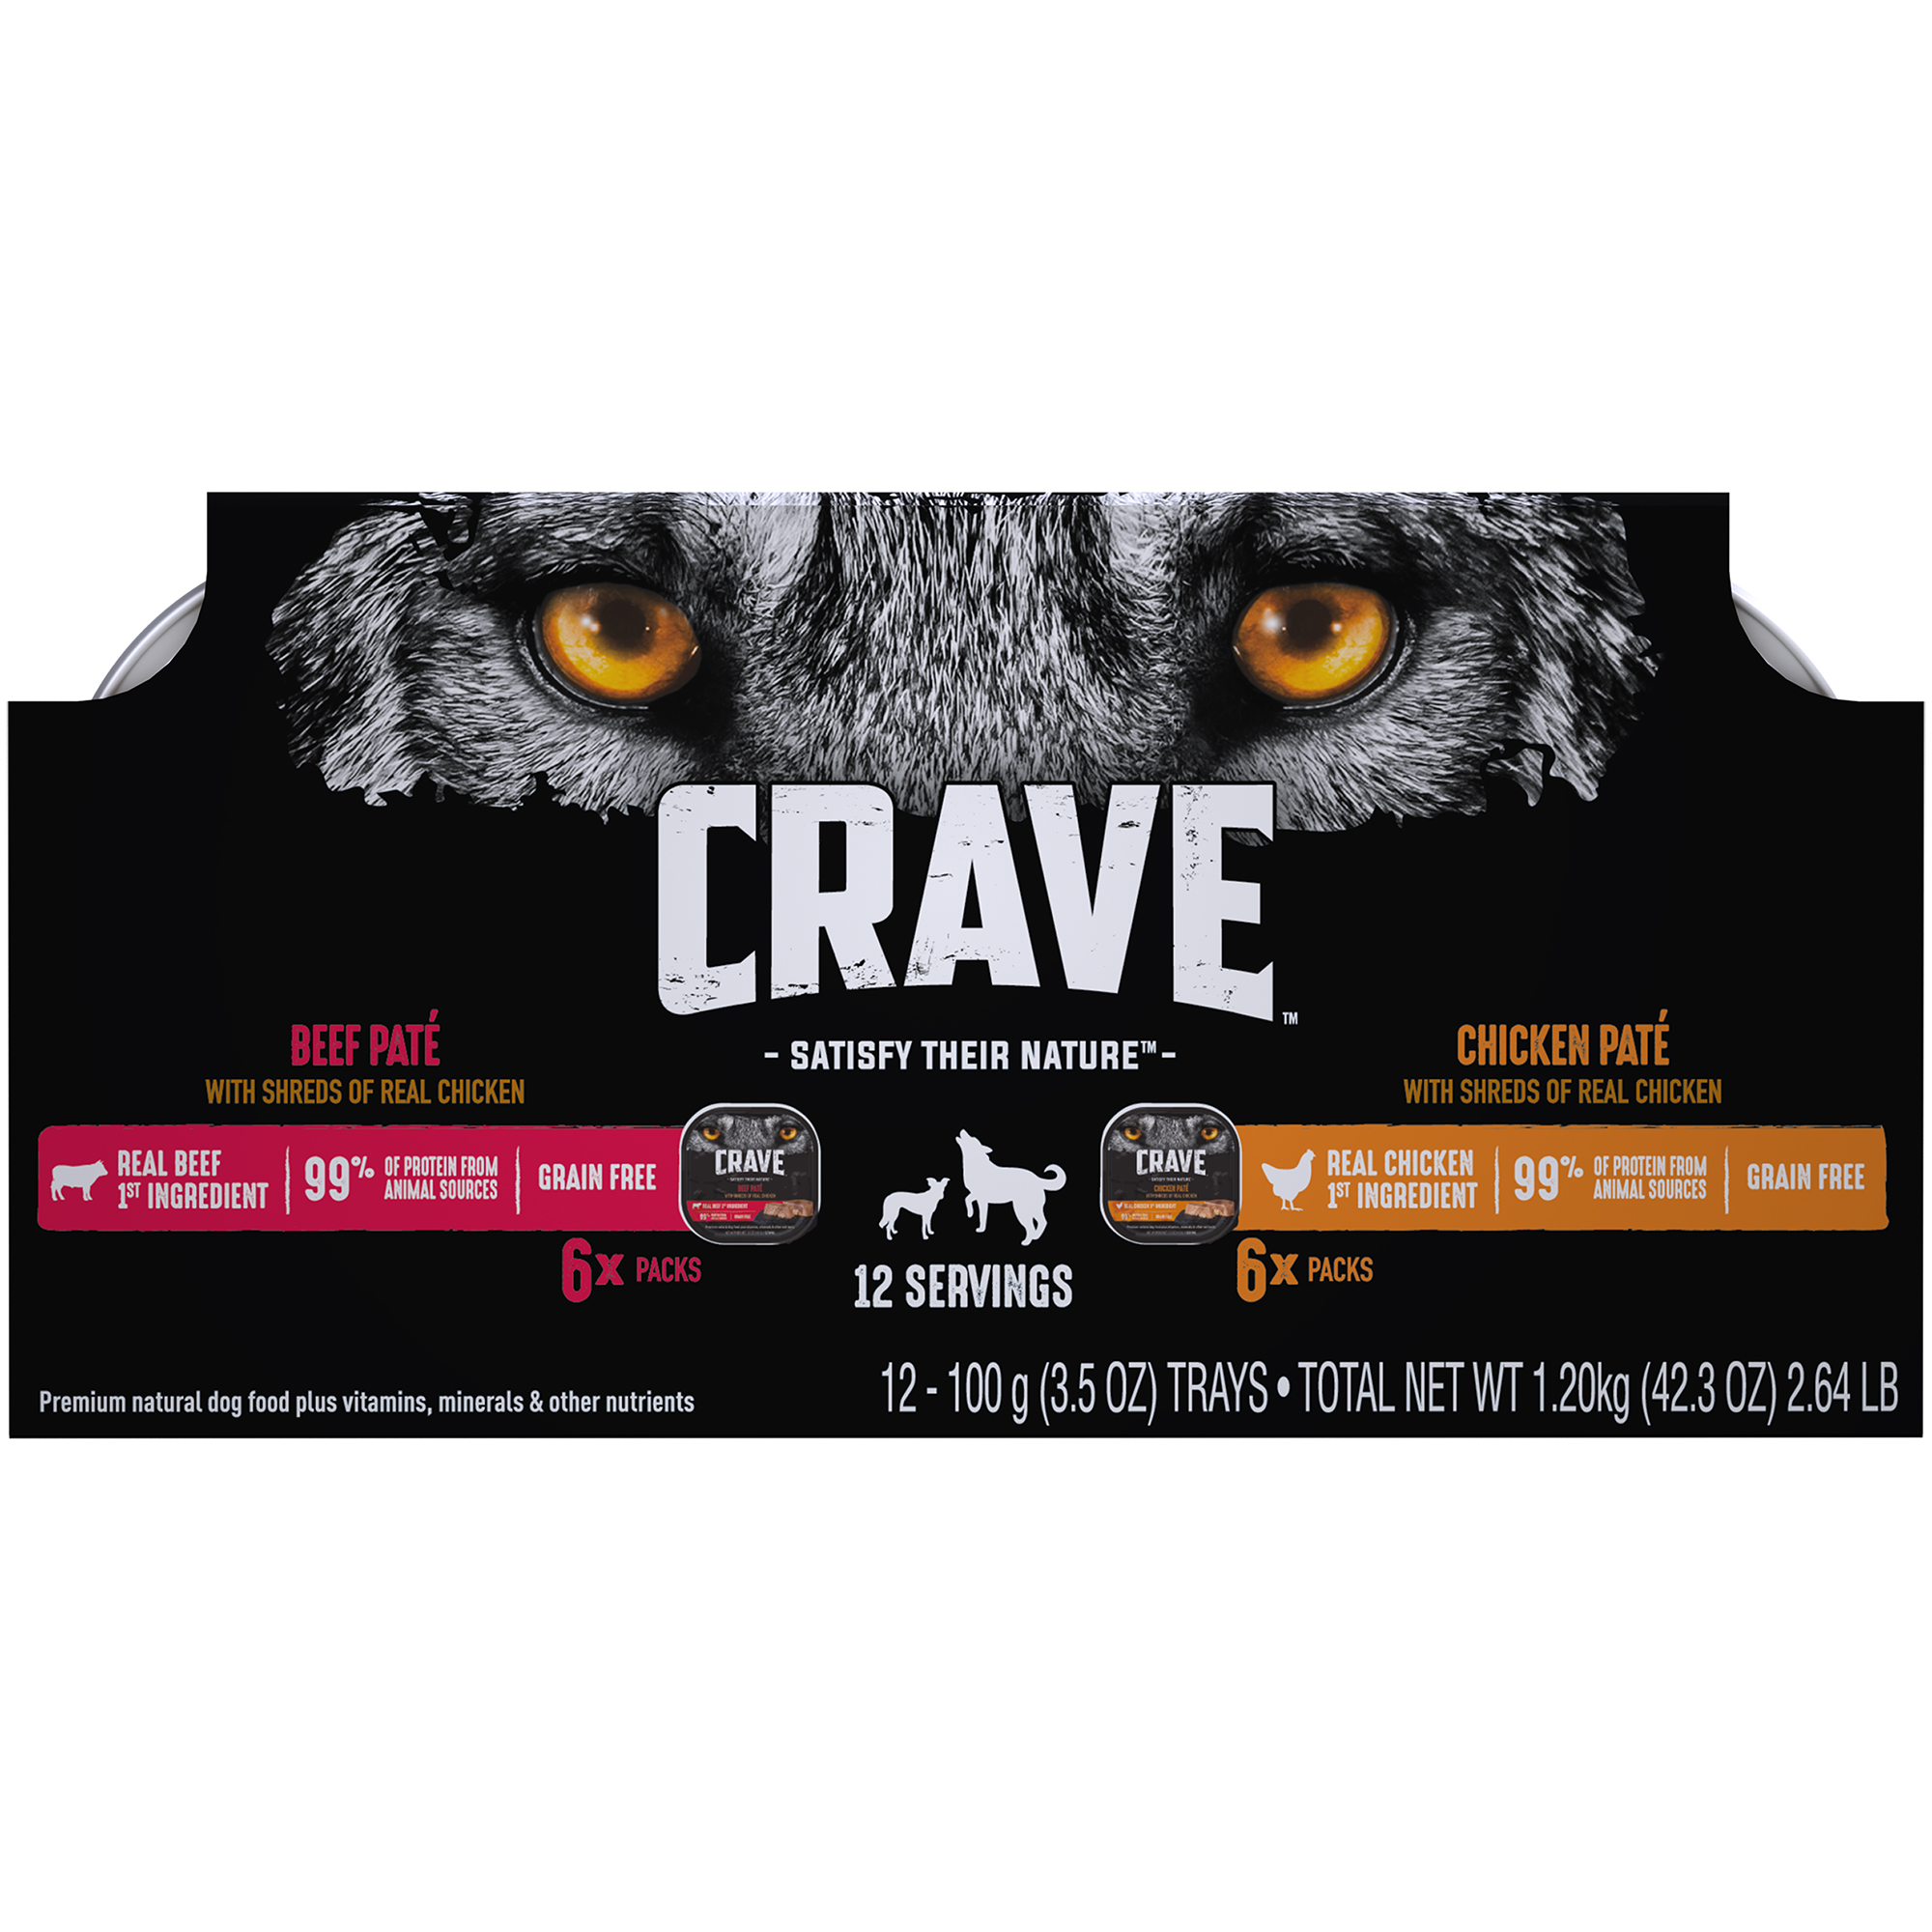 CRAVE Grain Free Adult Wet Dog Food Chicken & Beef Pates with Shreds of Real Chicken Variety Pack, (12) 3.5... by Mars Petcare